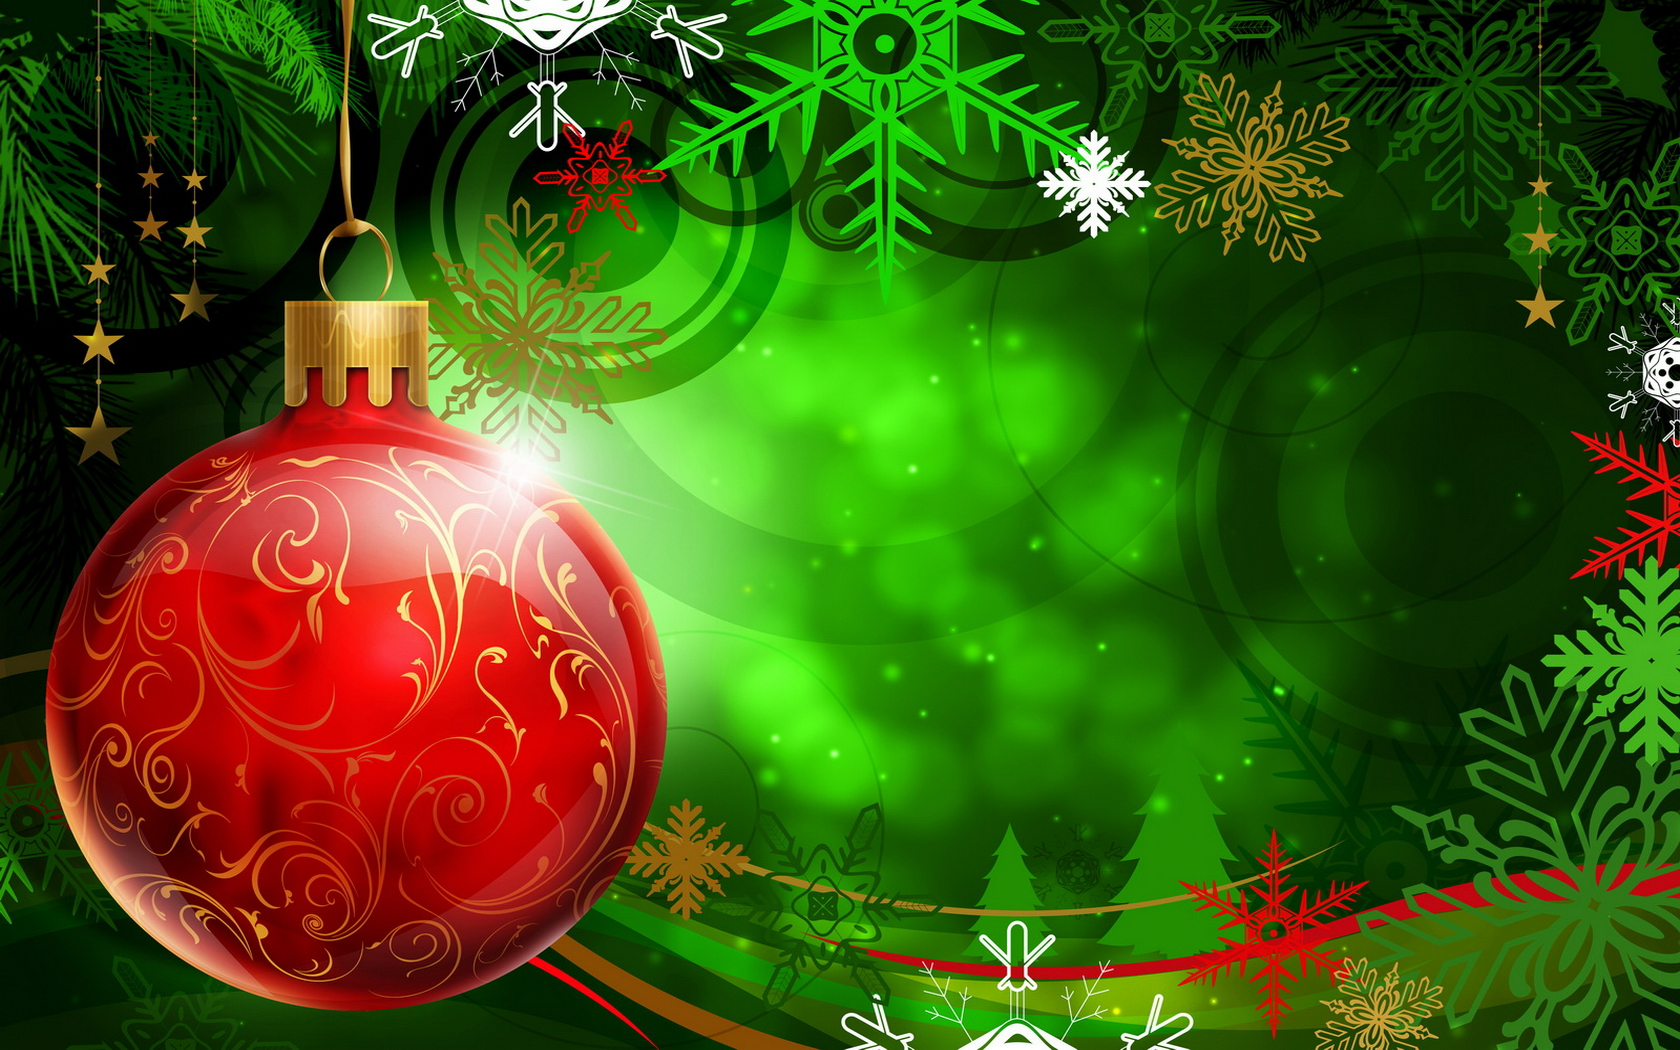 Free Abstract Free Christmas Free Wallpaper Downloads For Desktop Wallpaper